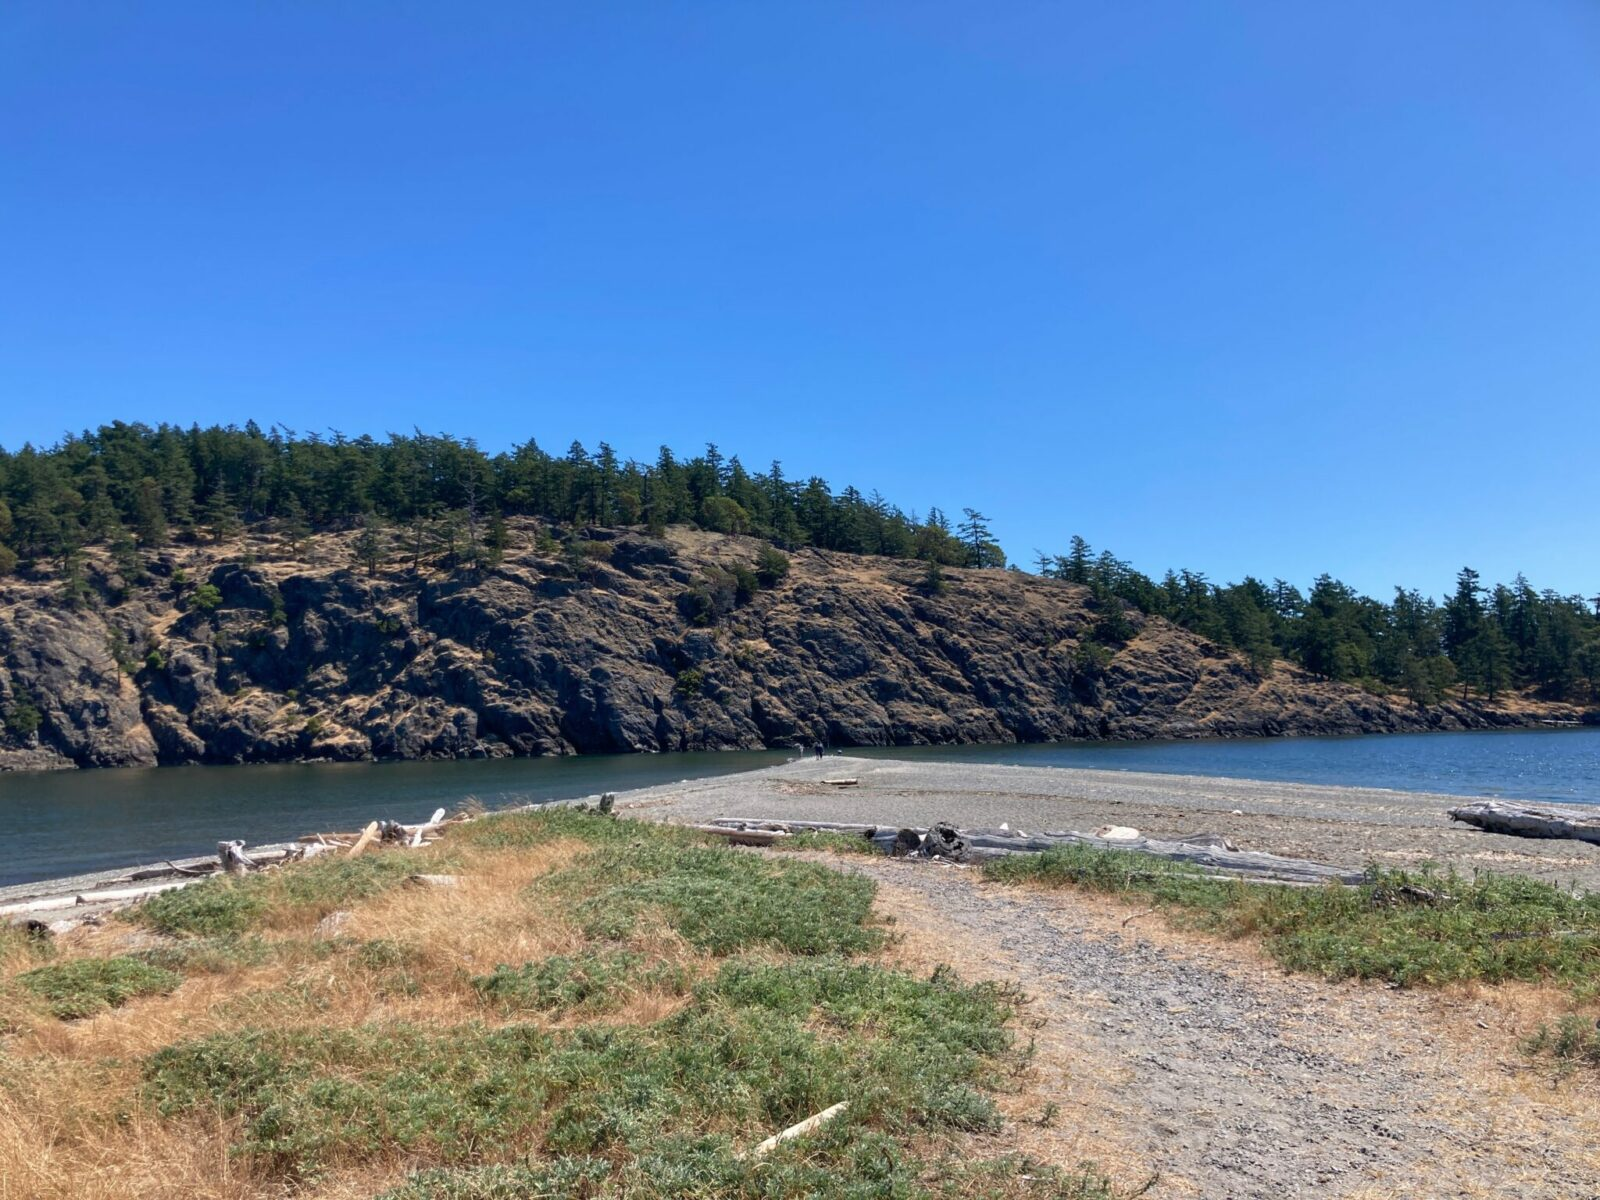 The tip of Spencer Spit on Lopez Island. There is some grass and driftwood and gravel in the foreground and a gravel beach goes out to a narrow point in the water. Very close to the end of the spit is another island with a rocky side and trees on top